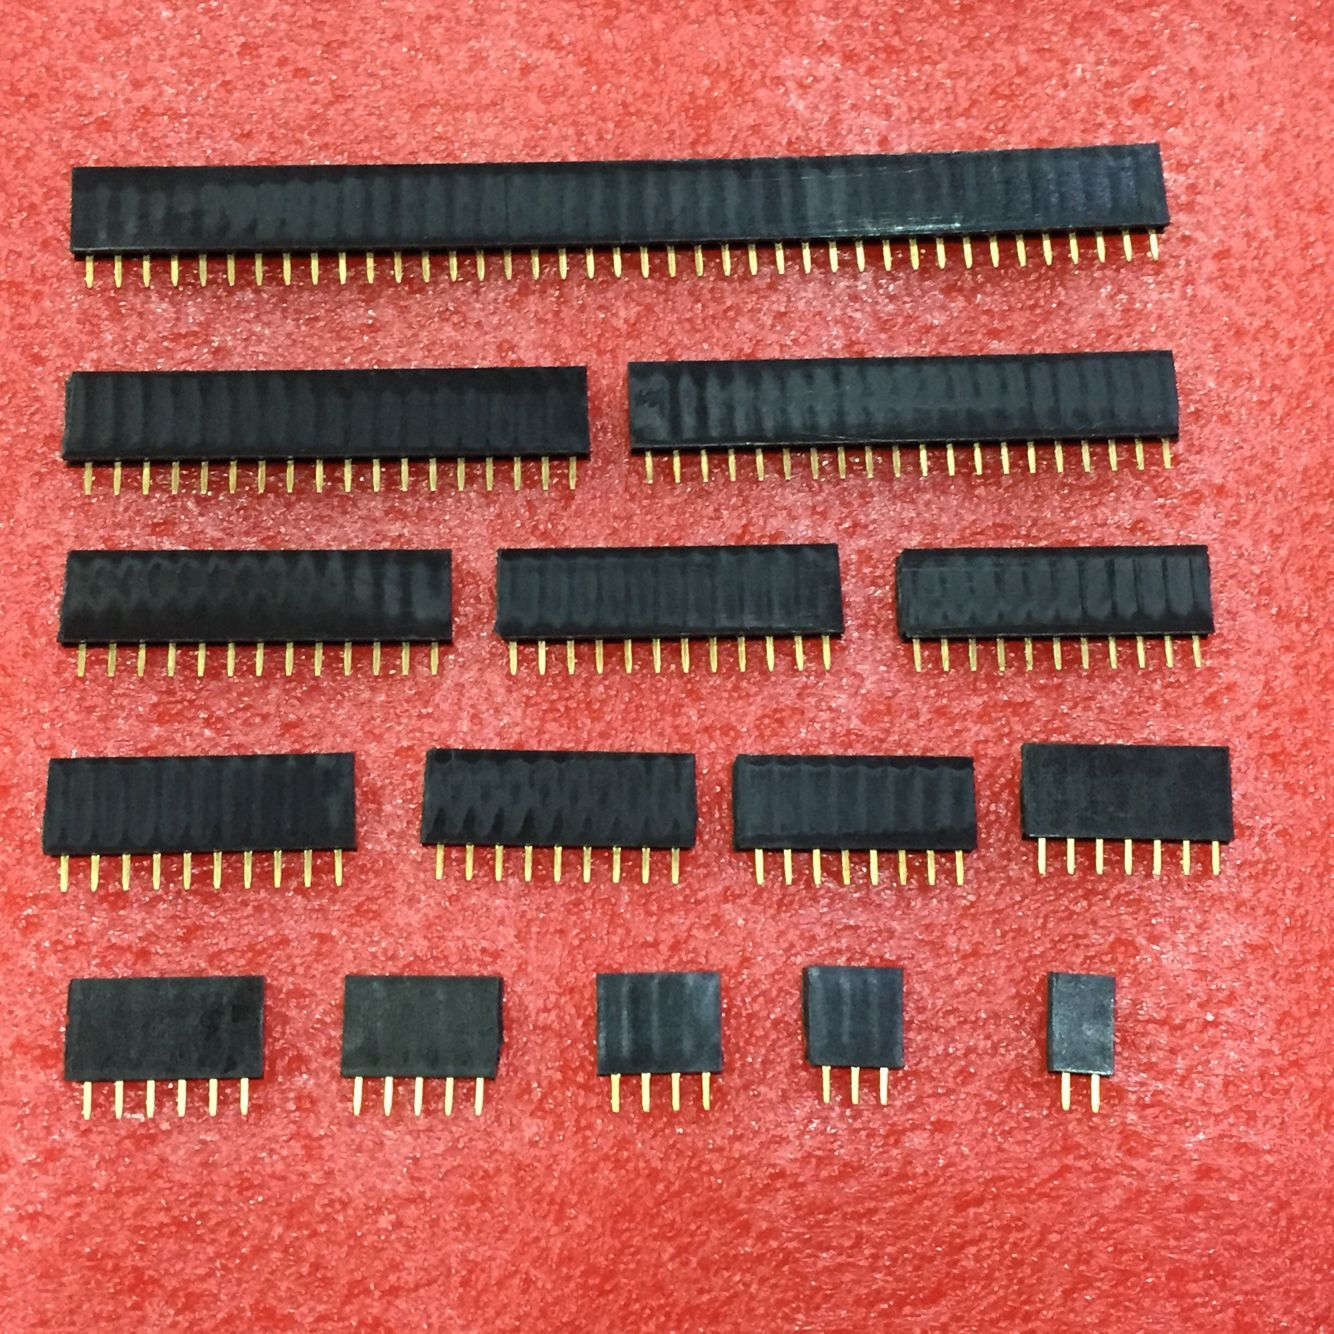 Single row female 2.54mm Pitch PCB Female Pin Header Connector Straight Single Row 2/3/4/5/6/7/8/9/10/11/12/13/14/15/16/20/40Pin 10pcs single row female 2 54mm pitch pcb female pin header connector straight single row 2 3 4 5 6 8 10 12 14 15 16 20 40pin